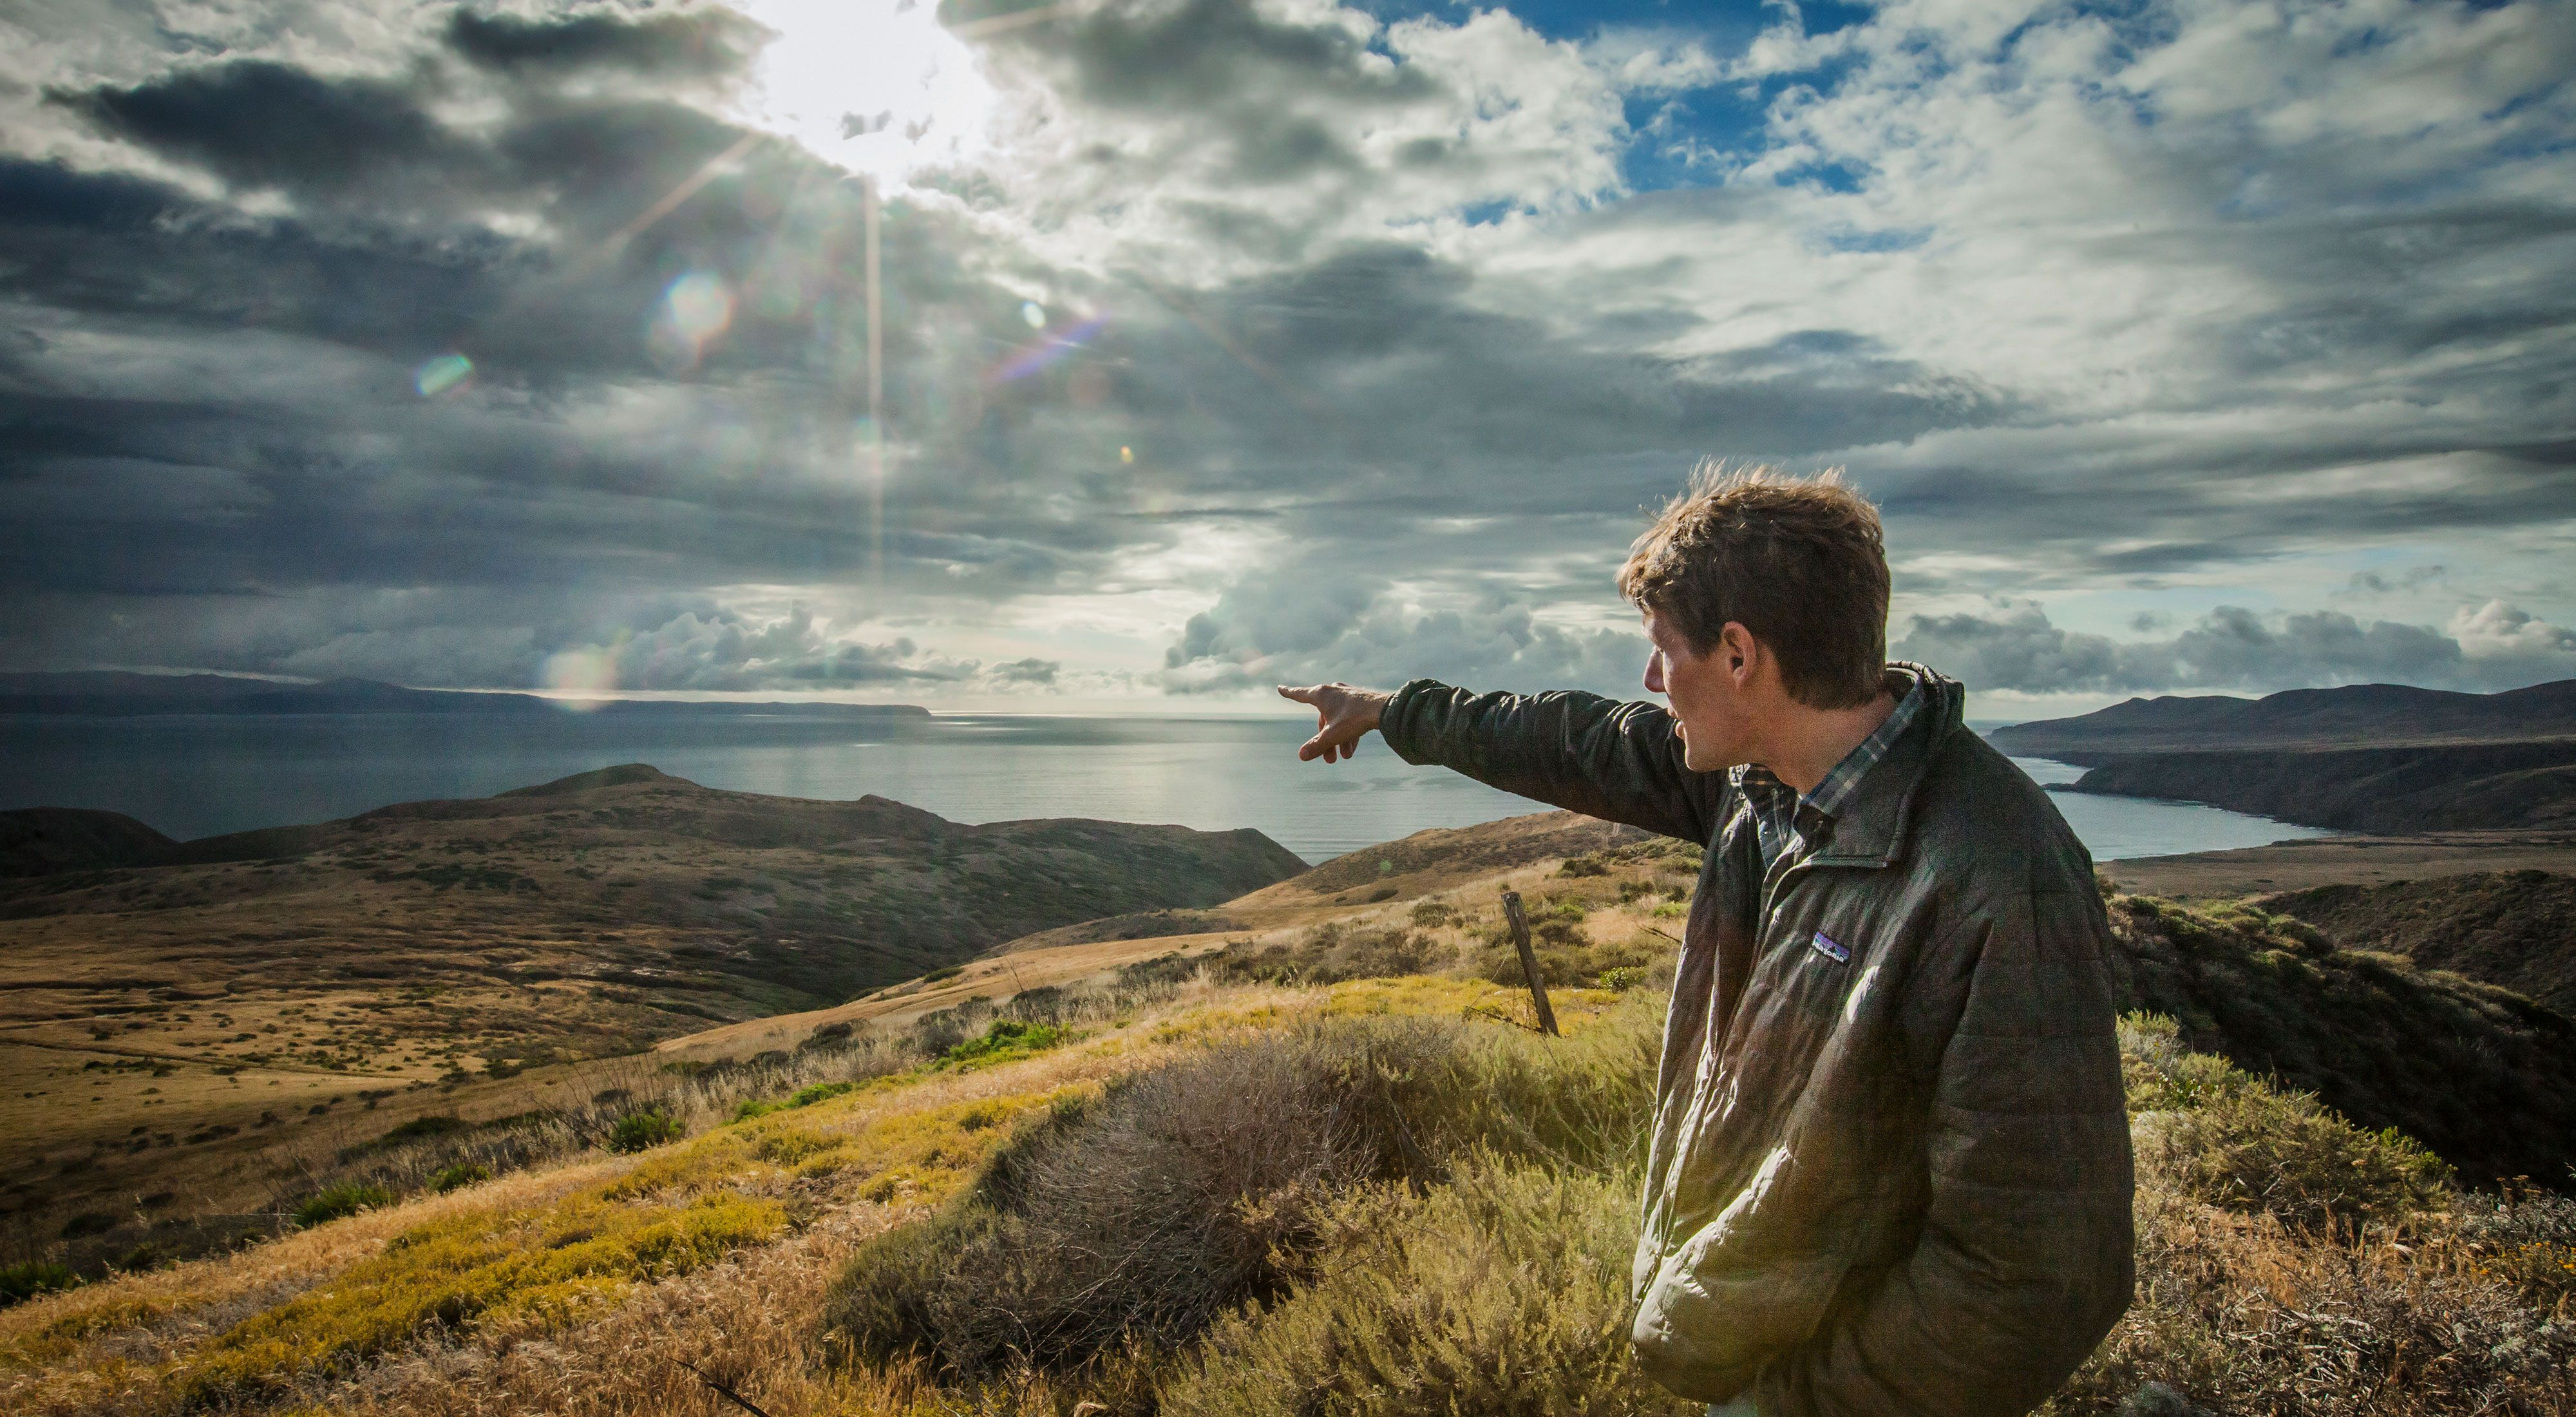 Scott Morrison, The Victor E. Shelford Director of Conservation Science for The Nature Conservancy, stands at the western edge of Santa Cruz Island overlooking Santa Rosa Island in the distance.